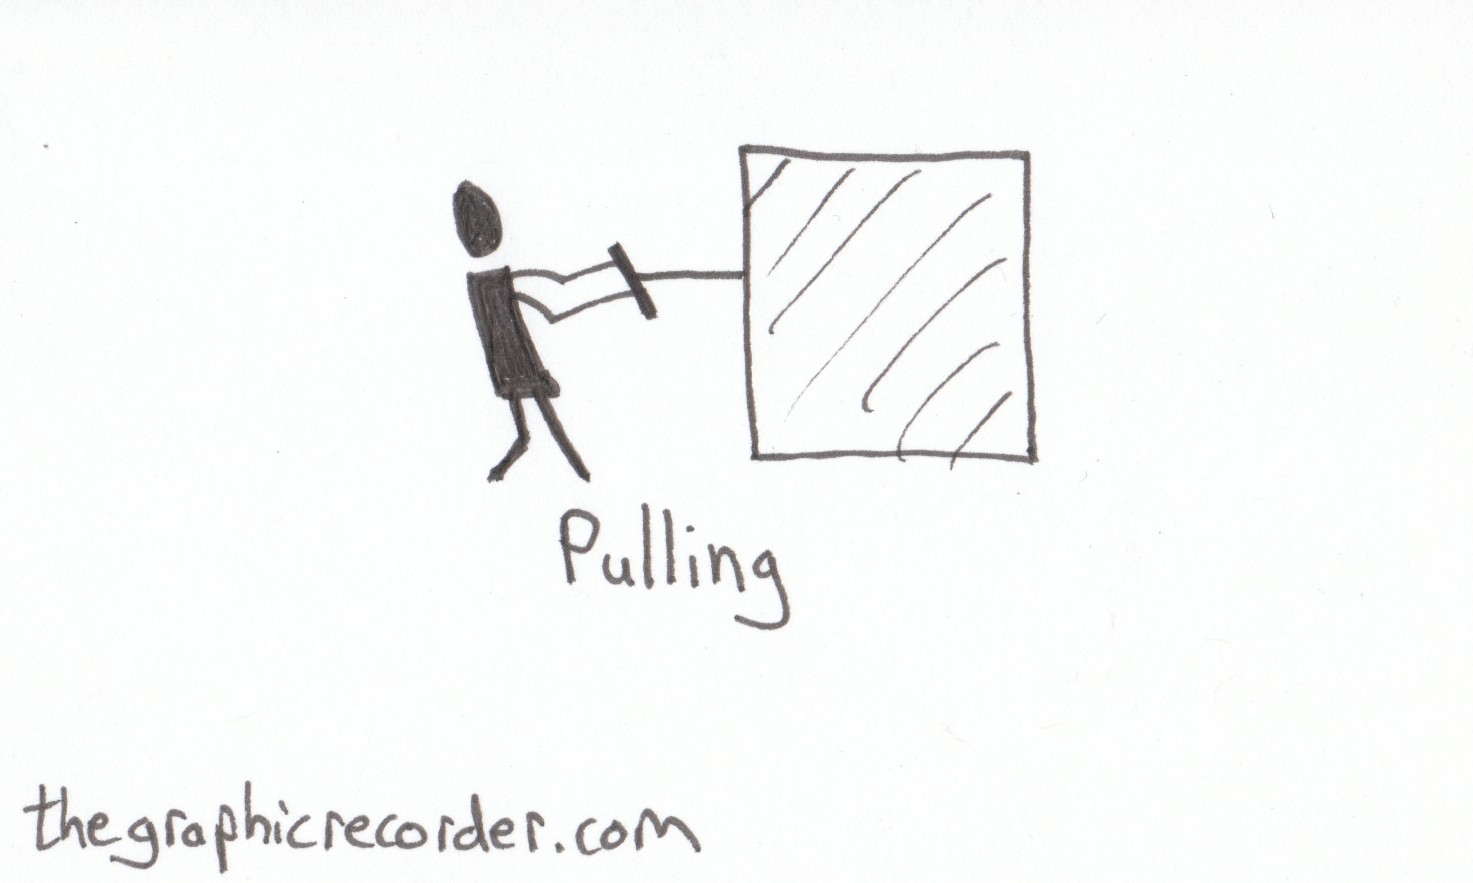 The Graphic Recorder - Note Card Sketch Notes - Visual Vocabulary - Moving Stuff Around - Stick Figure Pulling